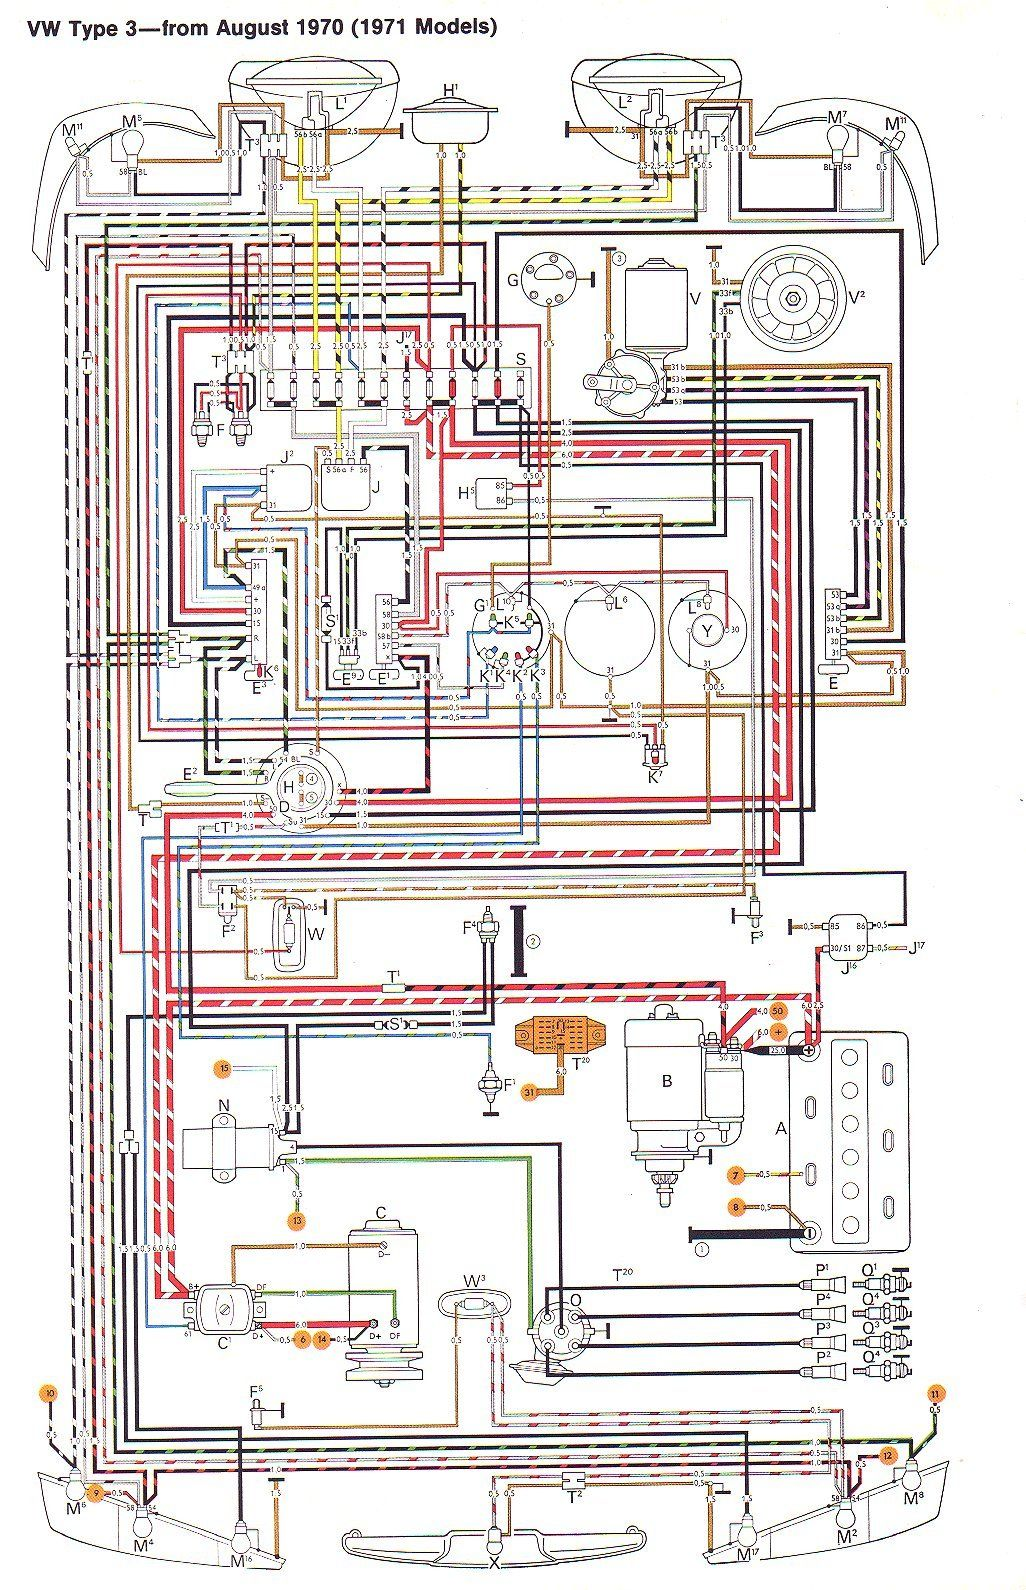 71 VW T3 wiring diagram Van Interior, Diagram, Type 3, Volkswagen, Vintage